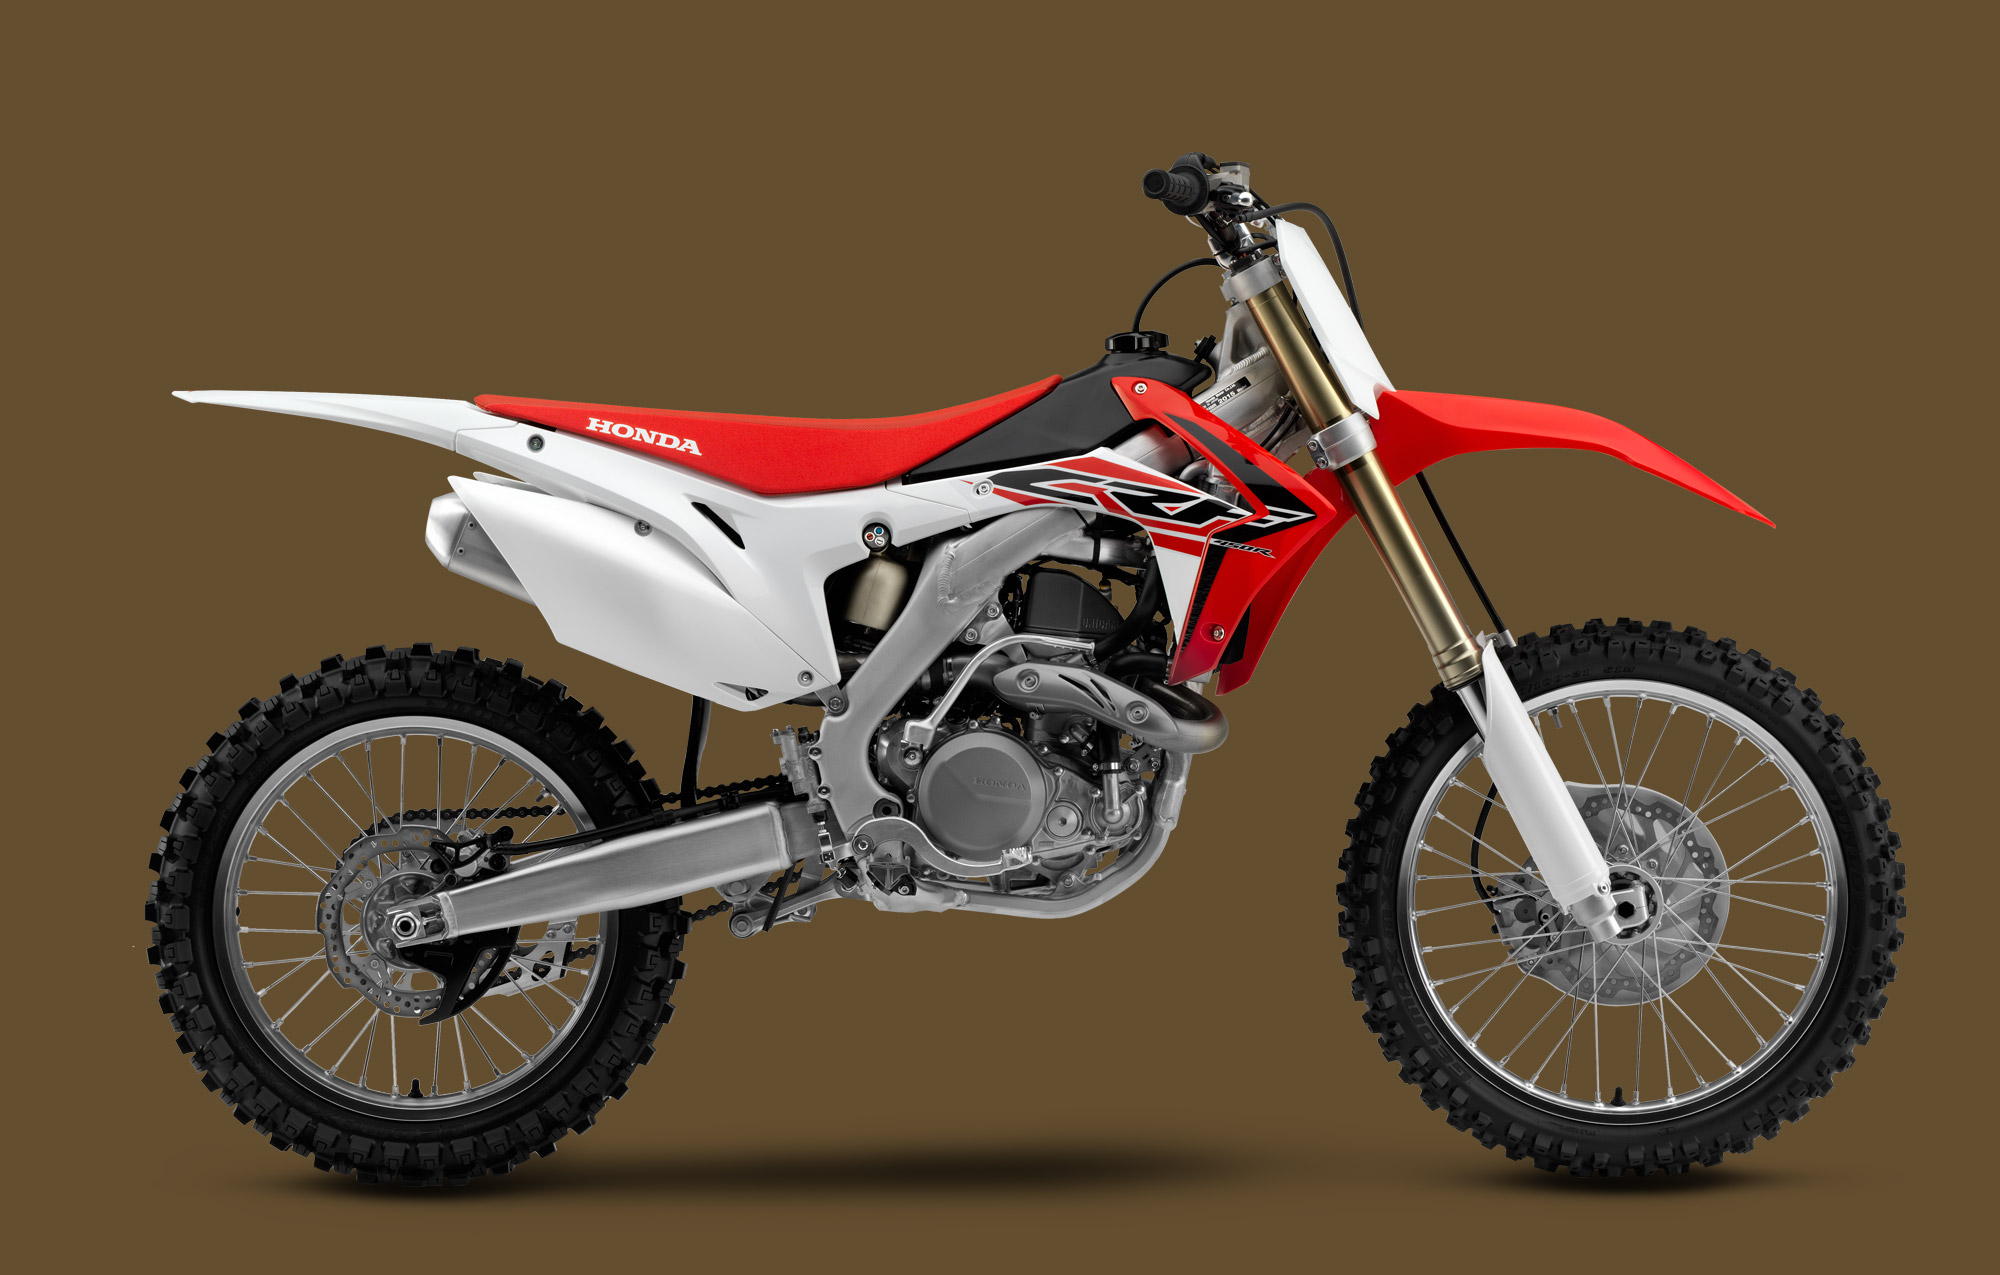 motorcycle wiring diagram explained software system model 2015 honda crf450r - your trophy awaits autoevolution